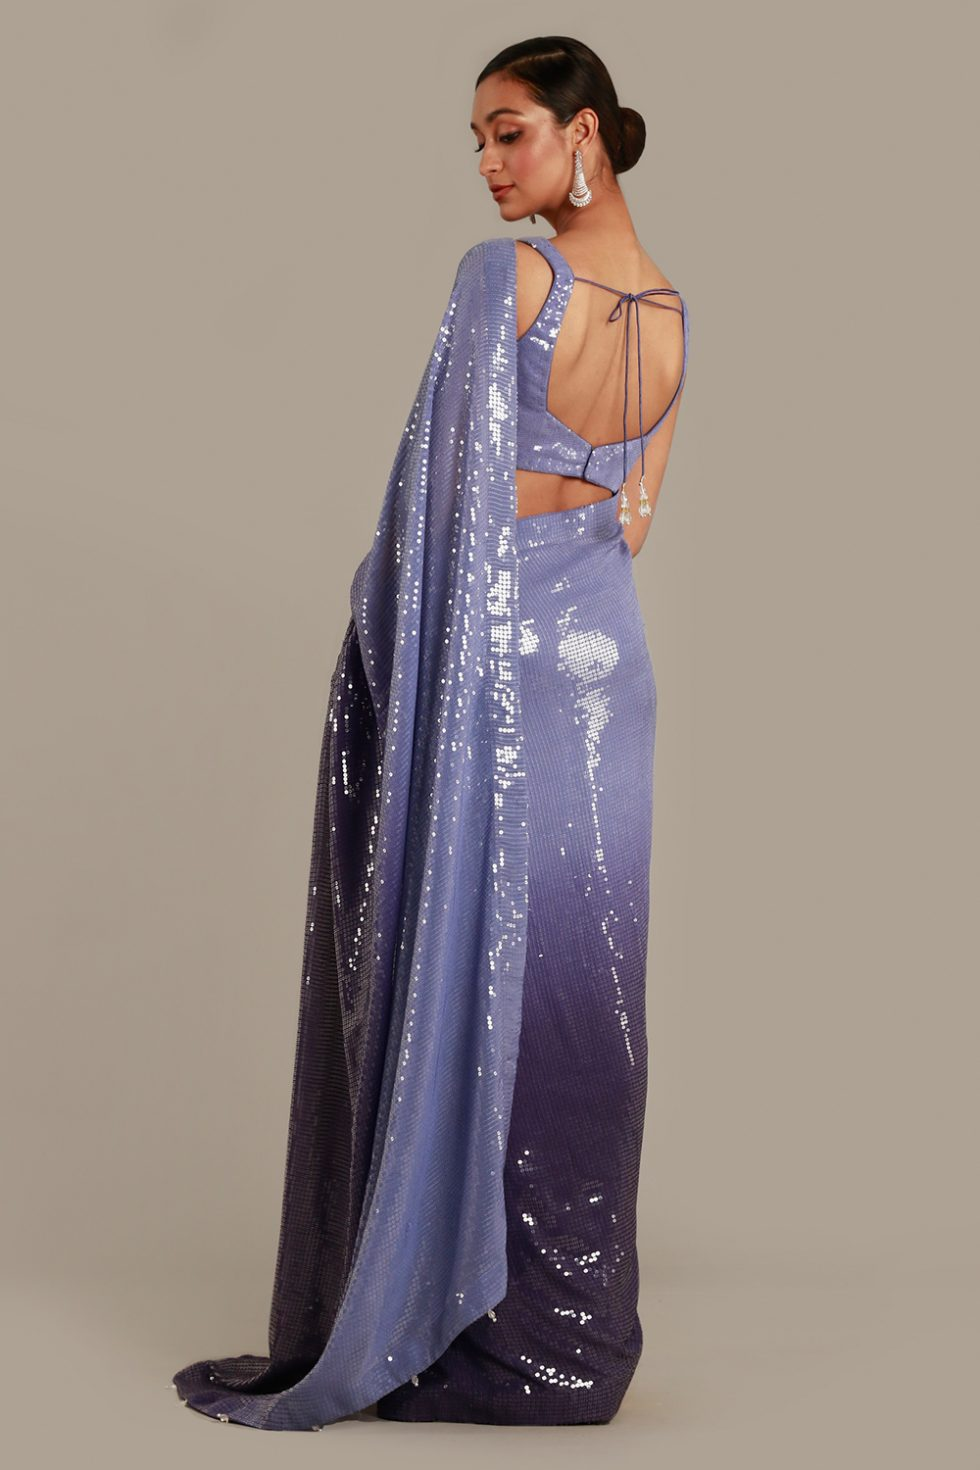 Ombré pastel purple to dark purple shimmery classic saree with matching blouse